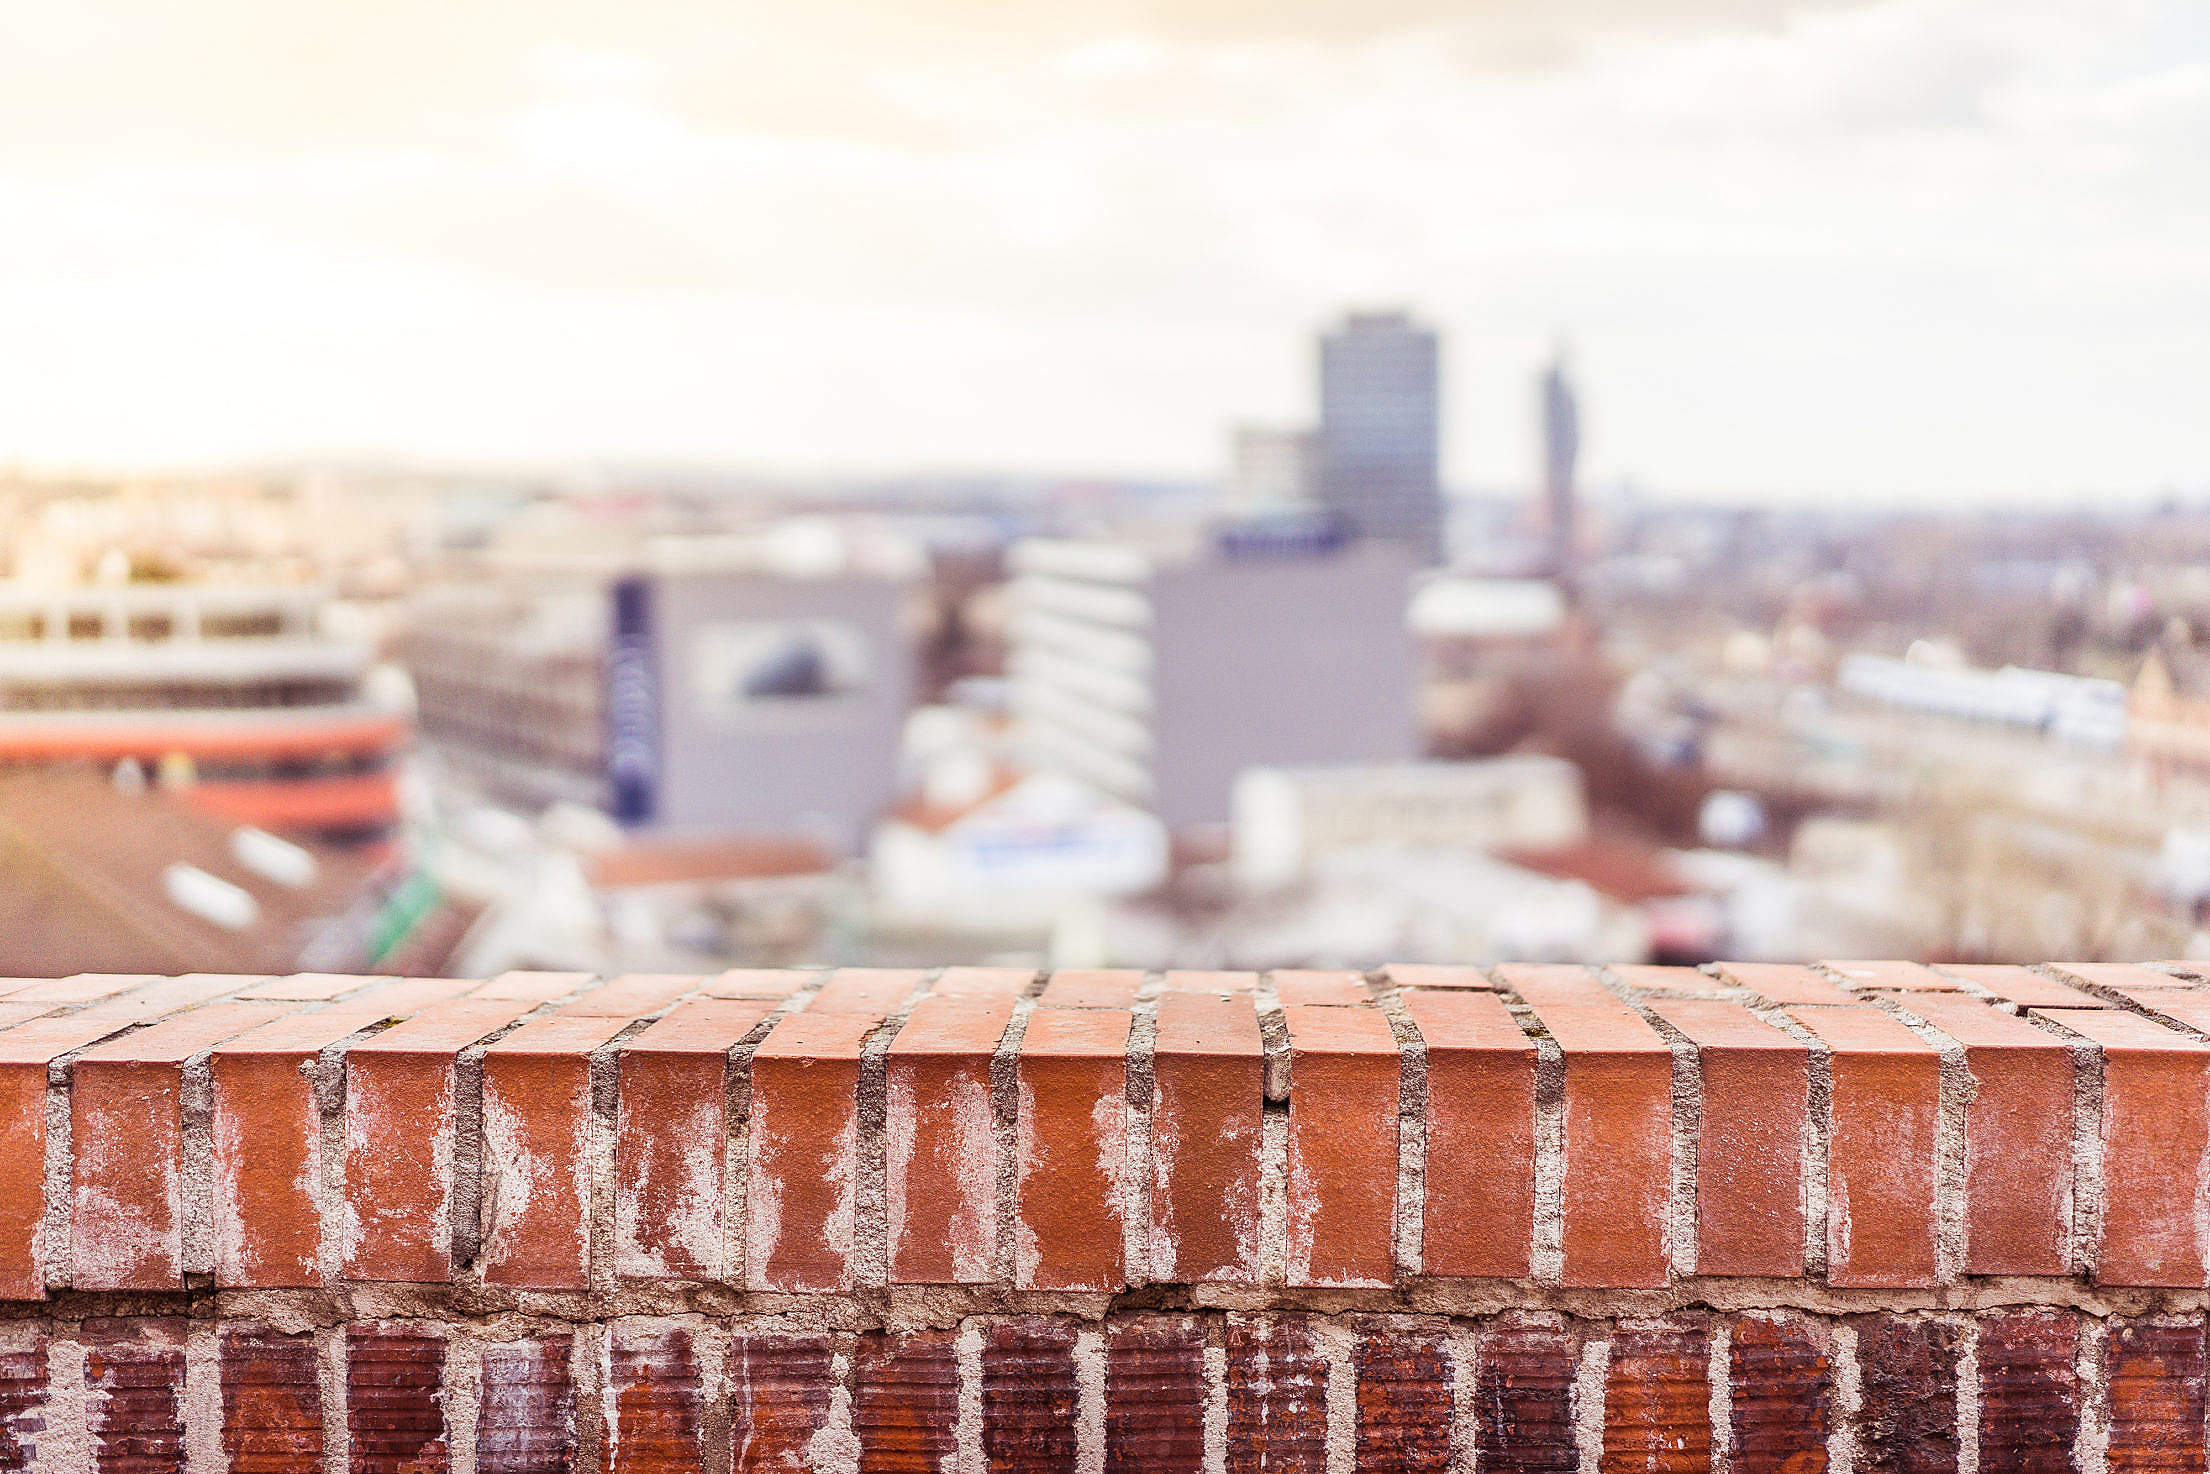 Empty Brick Wall with Blurred City View Background Free Stock Photo